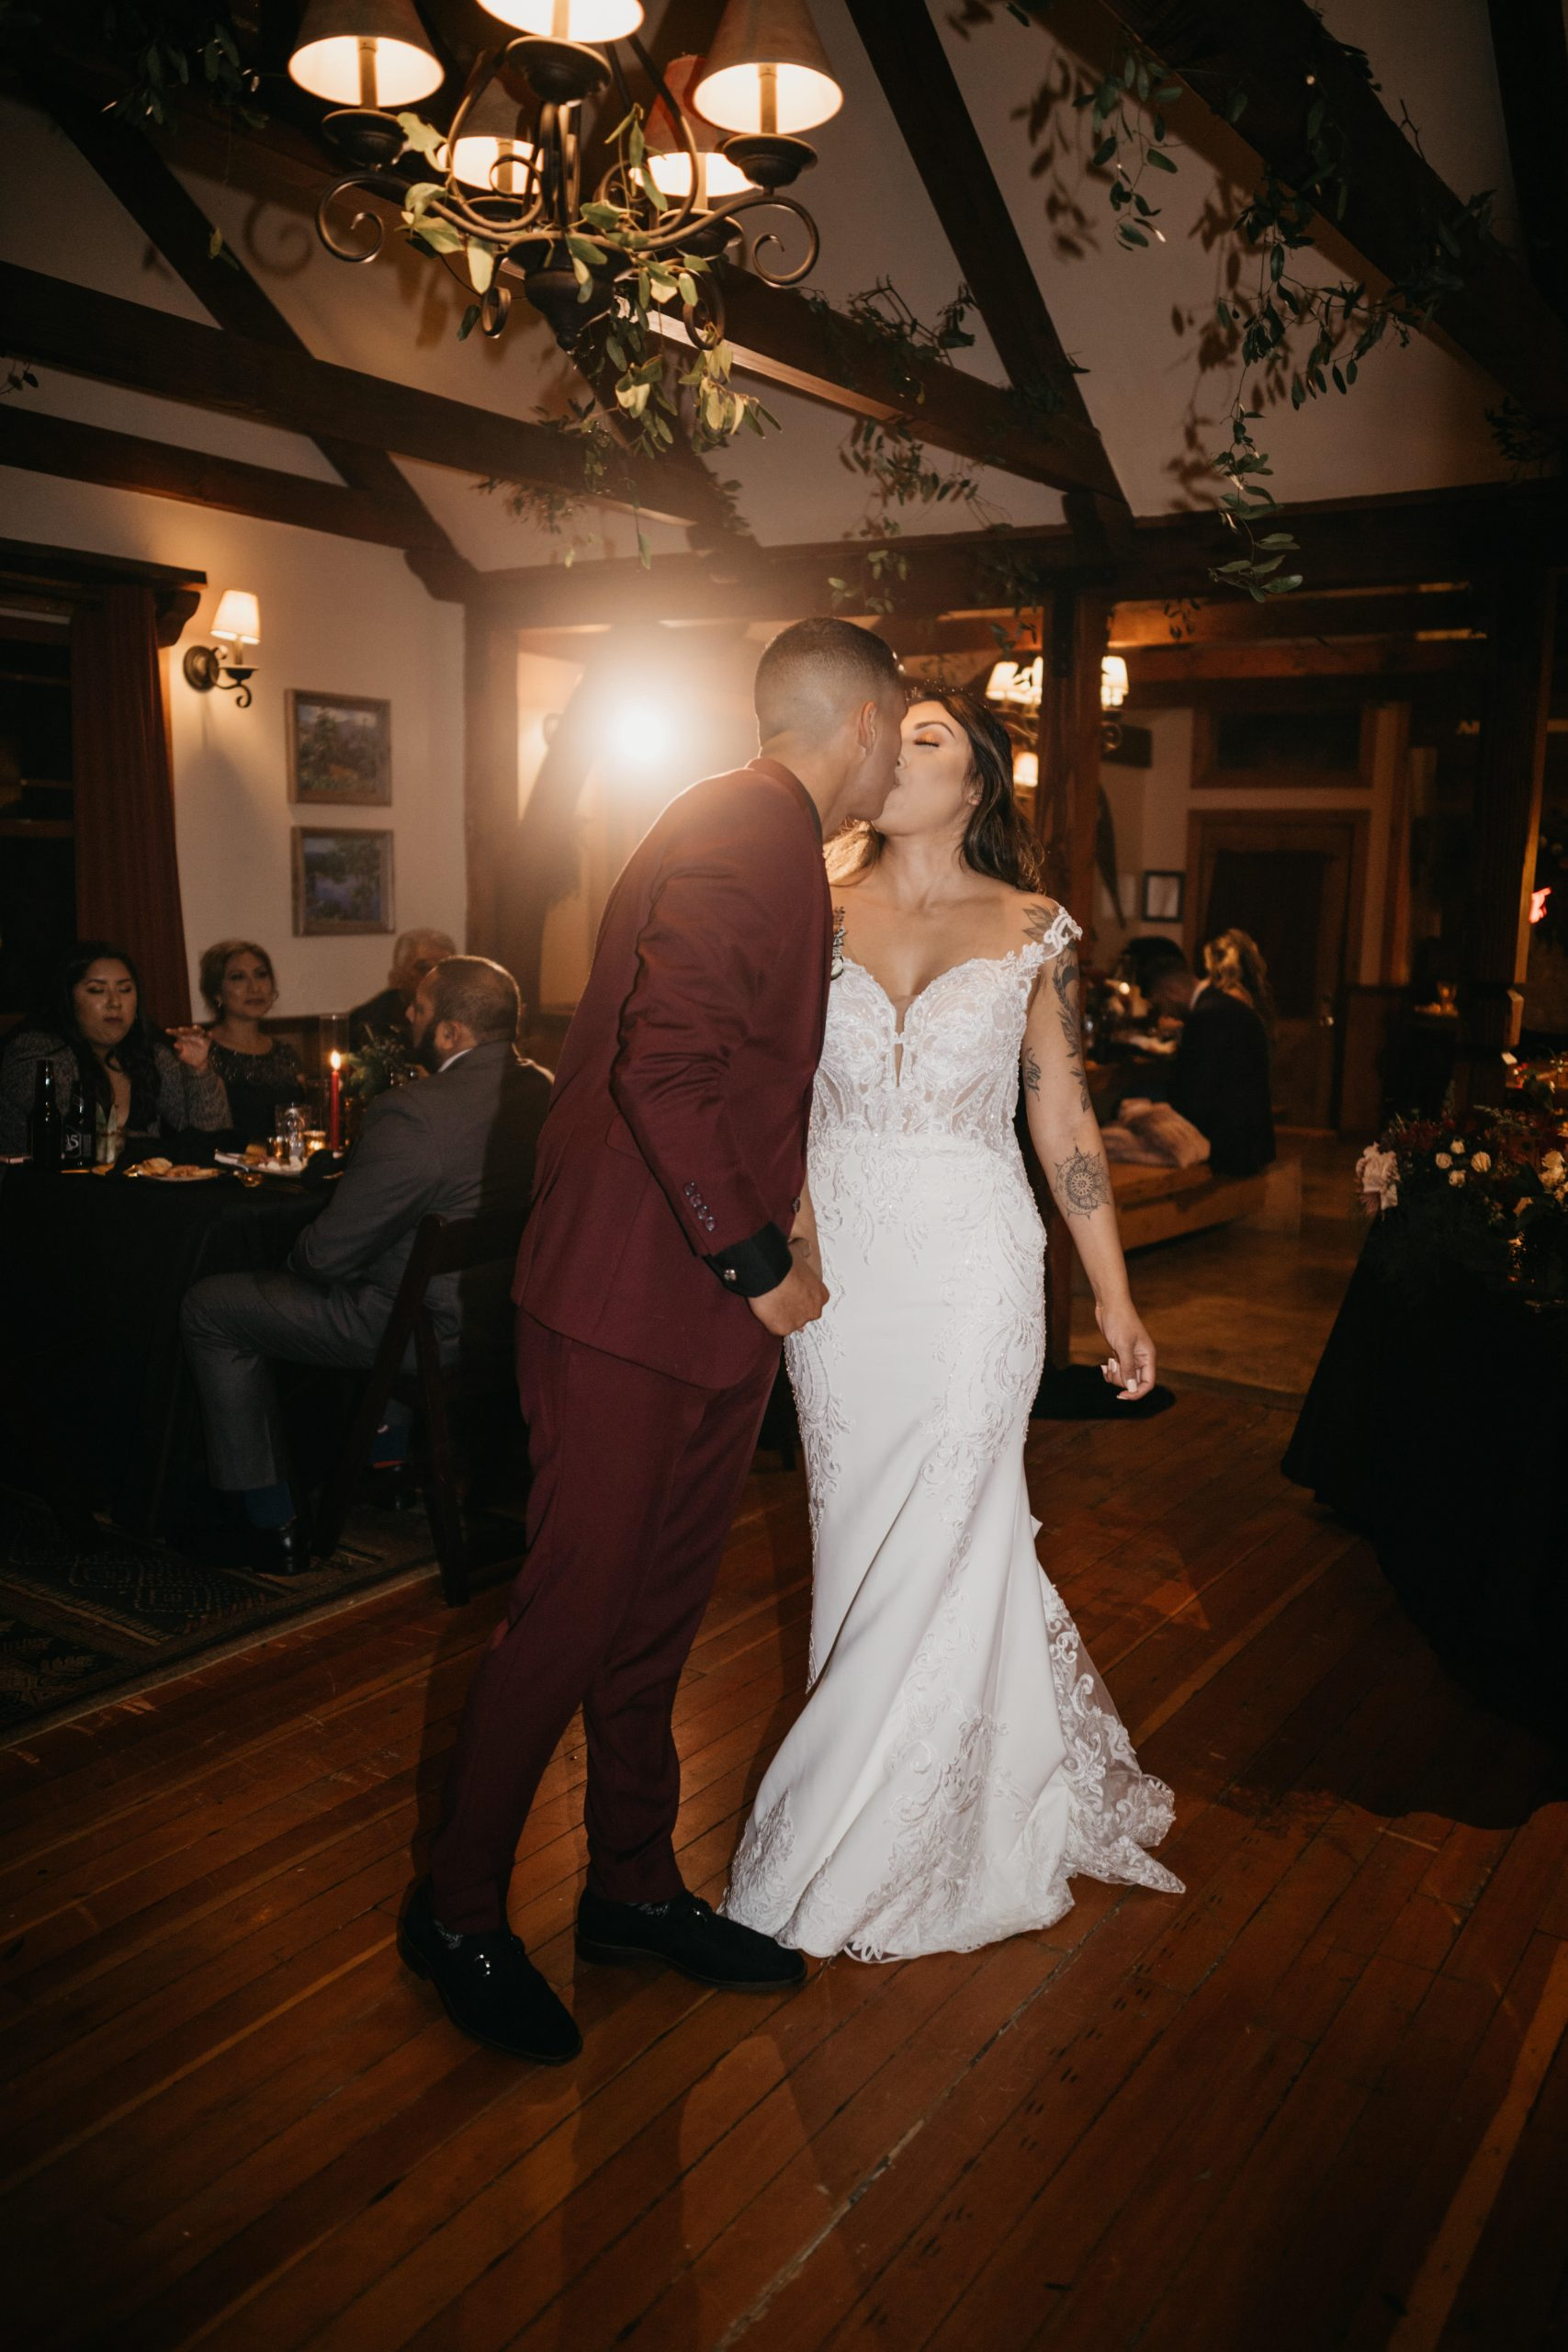 Bride and groom first dance, image by Fatima Elreda Photo